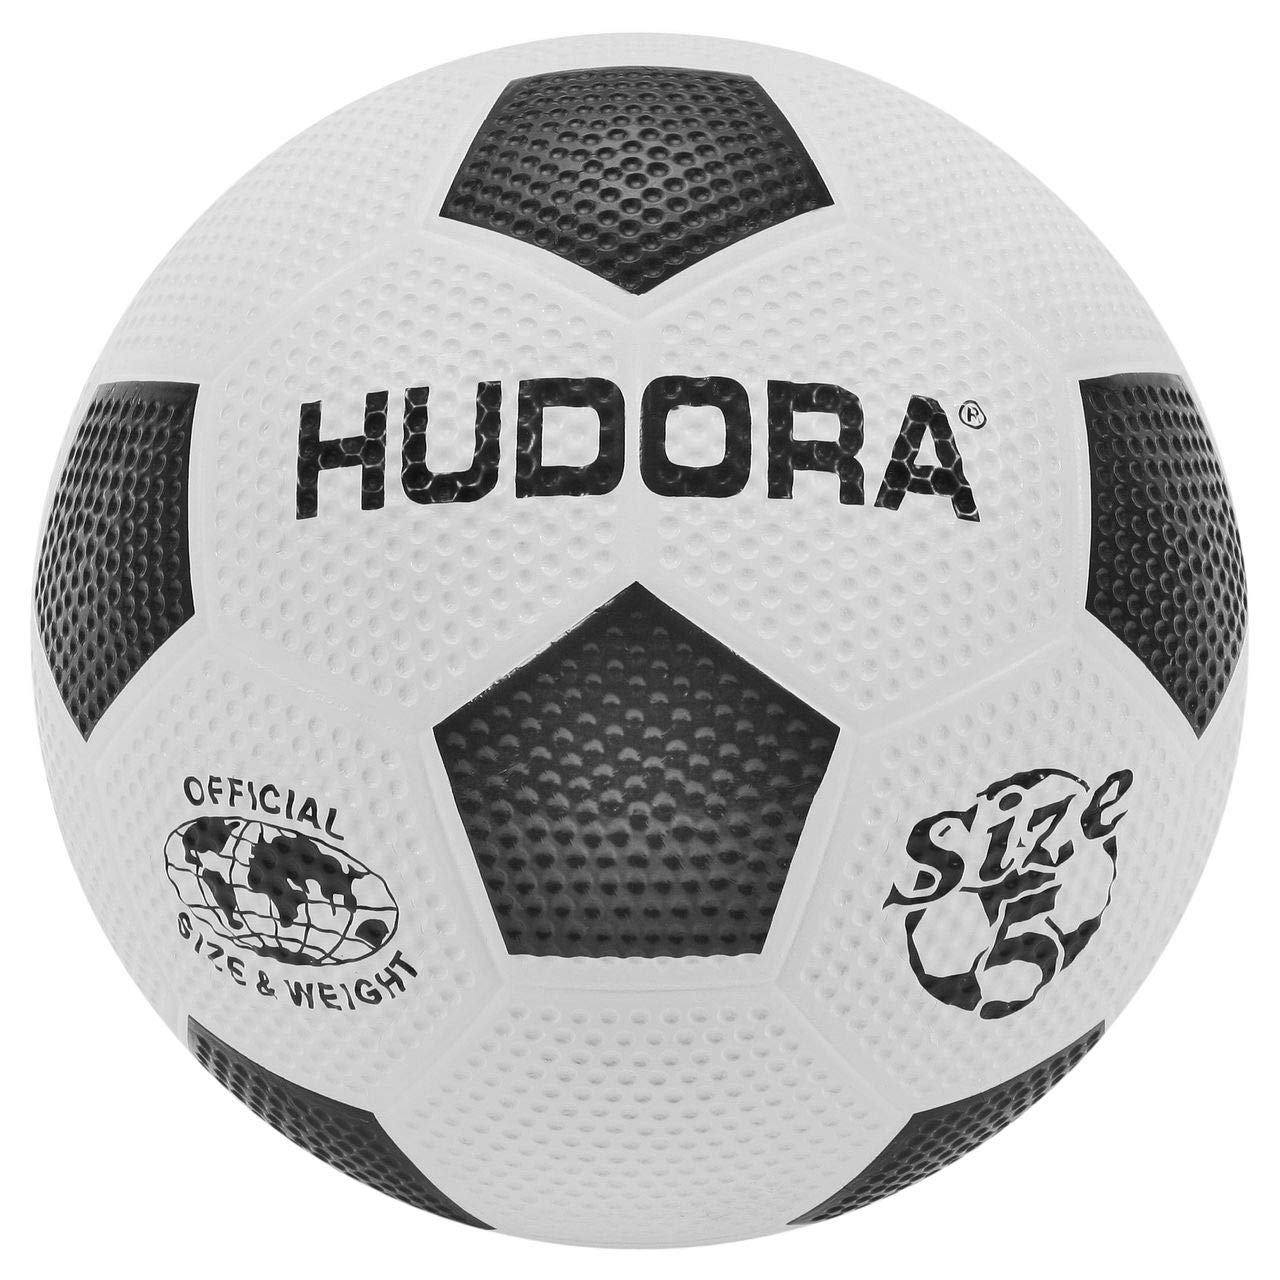 Hudora 71684 Football (Soccer) Ball Negro, Color Blanco Balon Deportivo - balones Deportivos